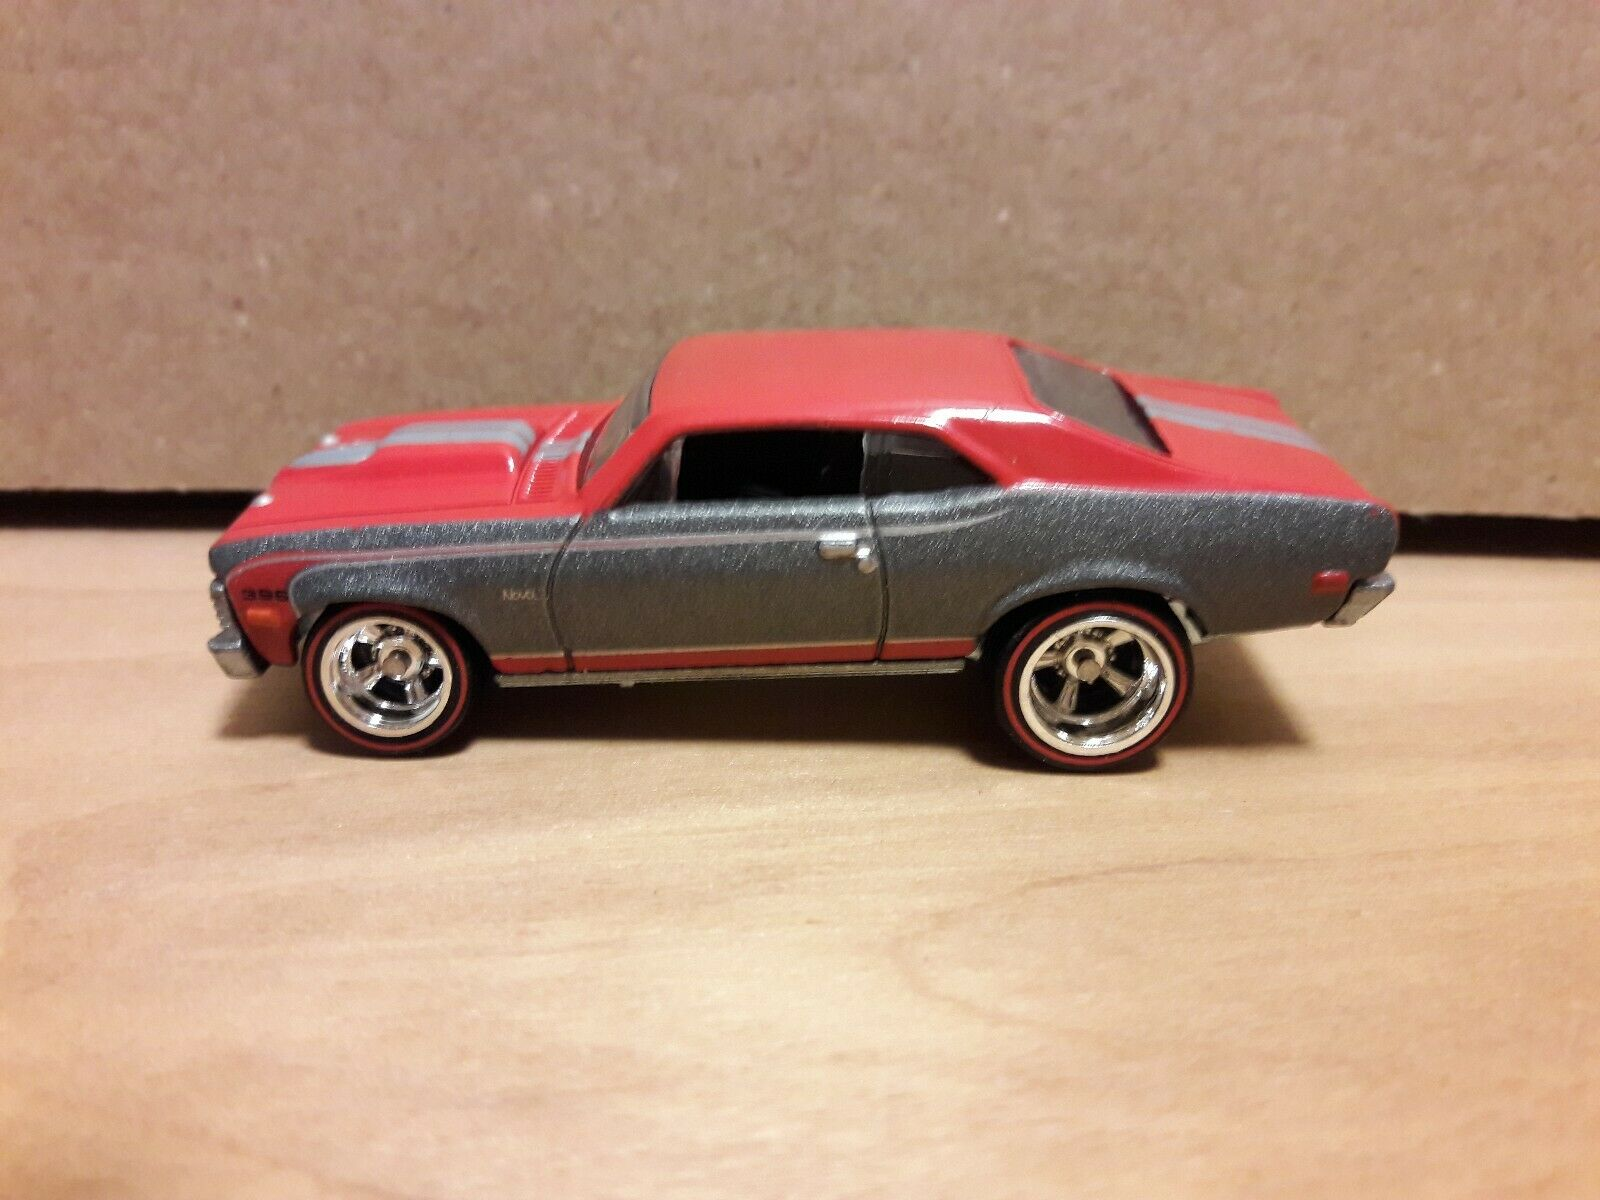 2011 HOT WHEELS GARAGE - '68 CHEVY NOVA - LOOSE - BRAND NEW